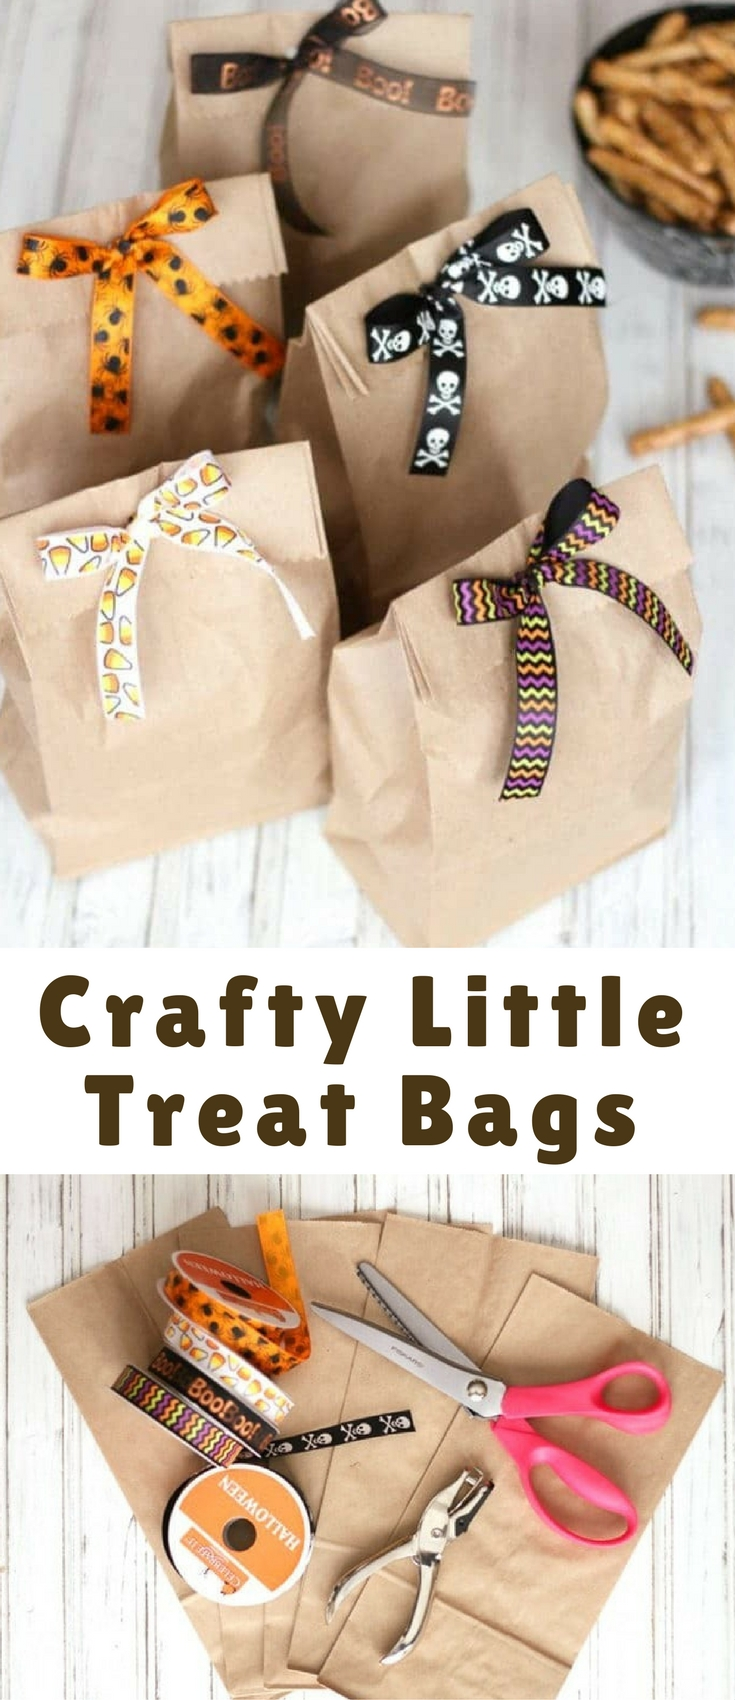 This is probably one of the cutest (and easiest) crafts I've posted! I get tons of compliments on these little homemade treat bags!